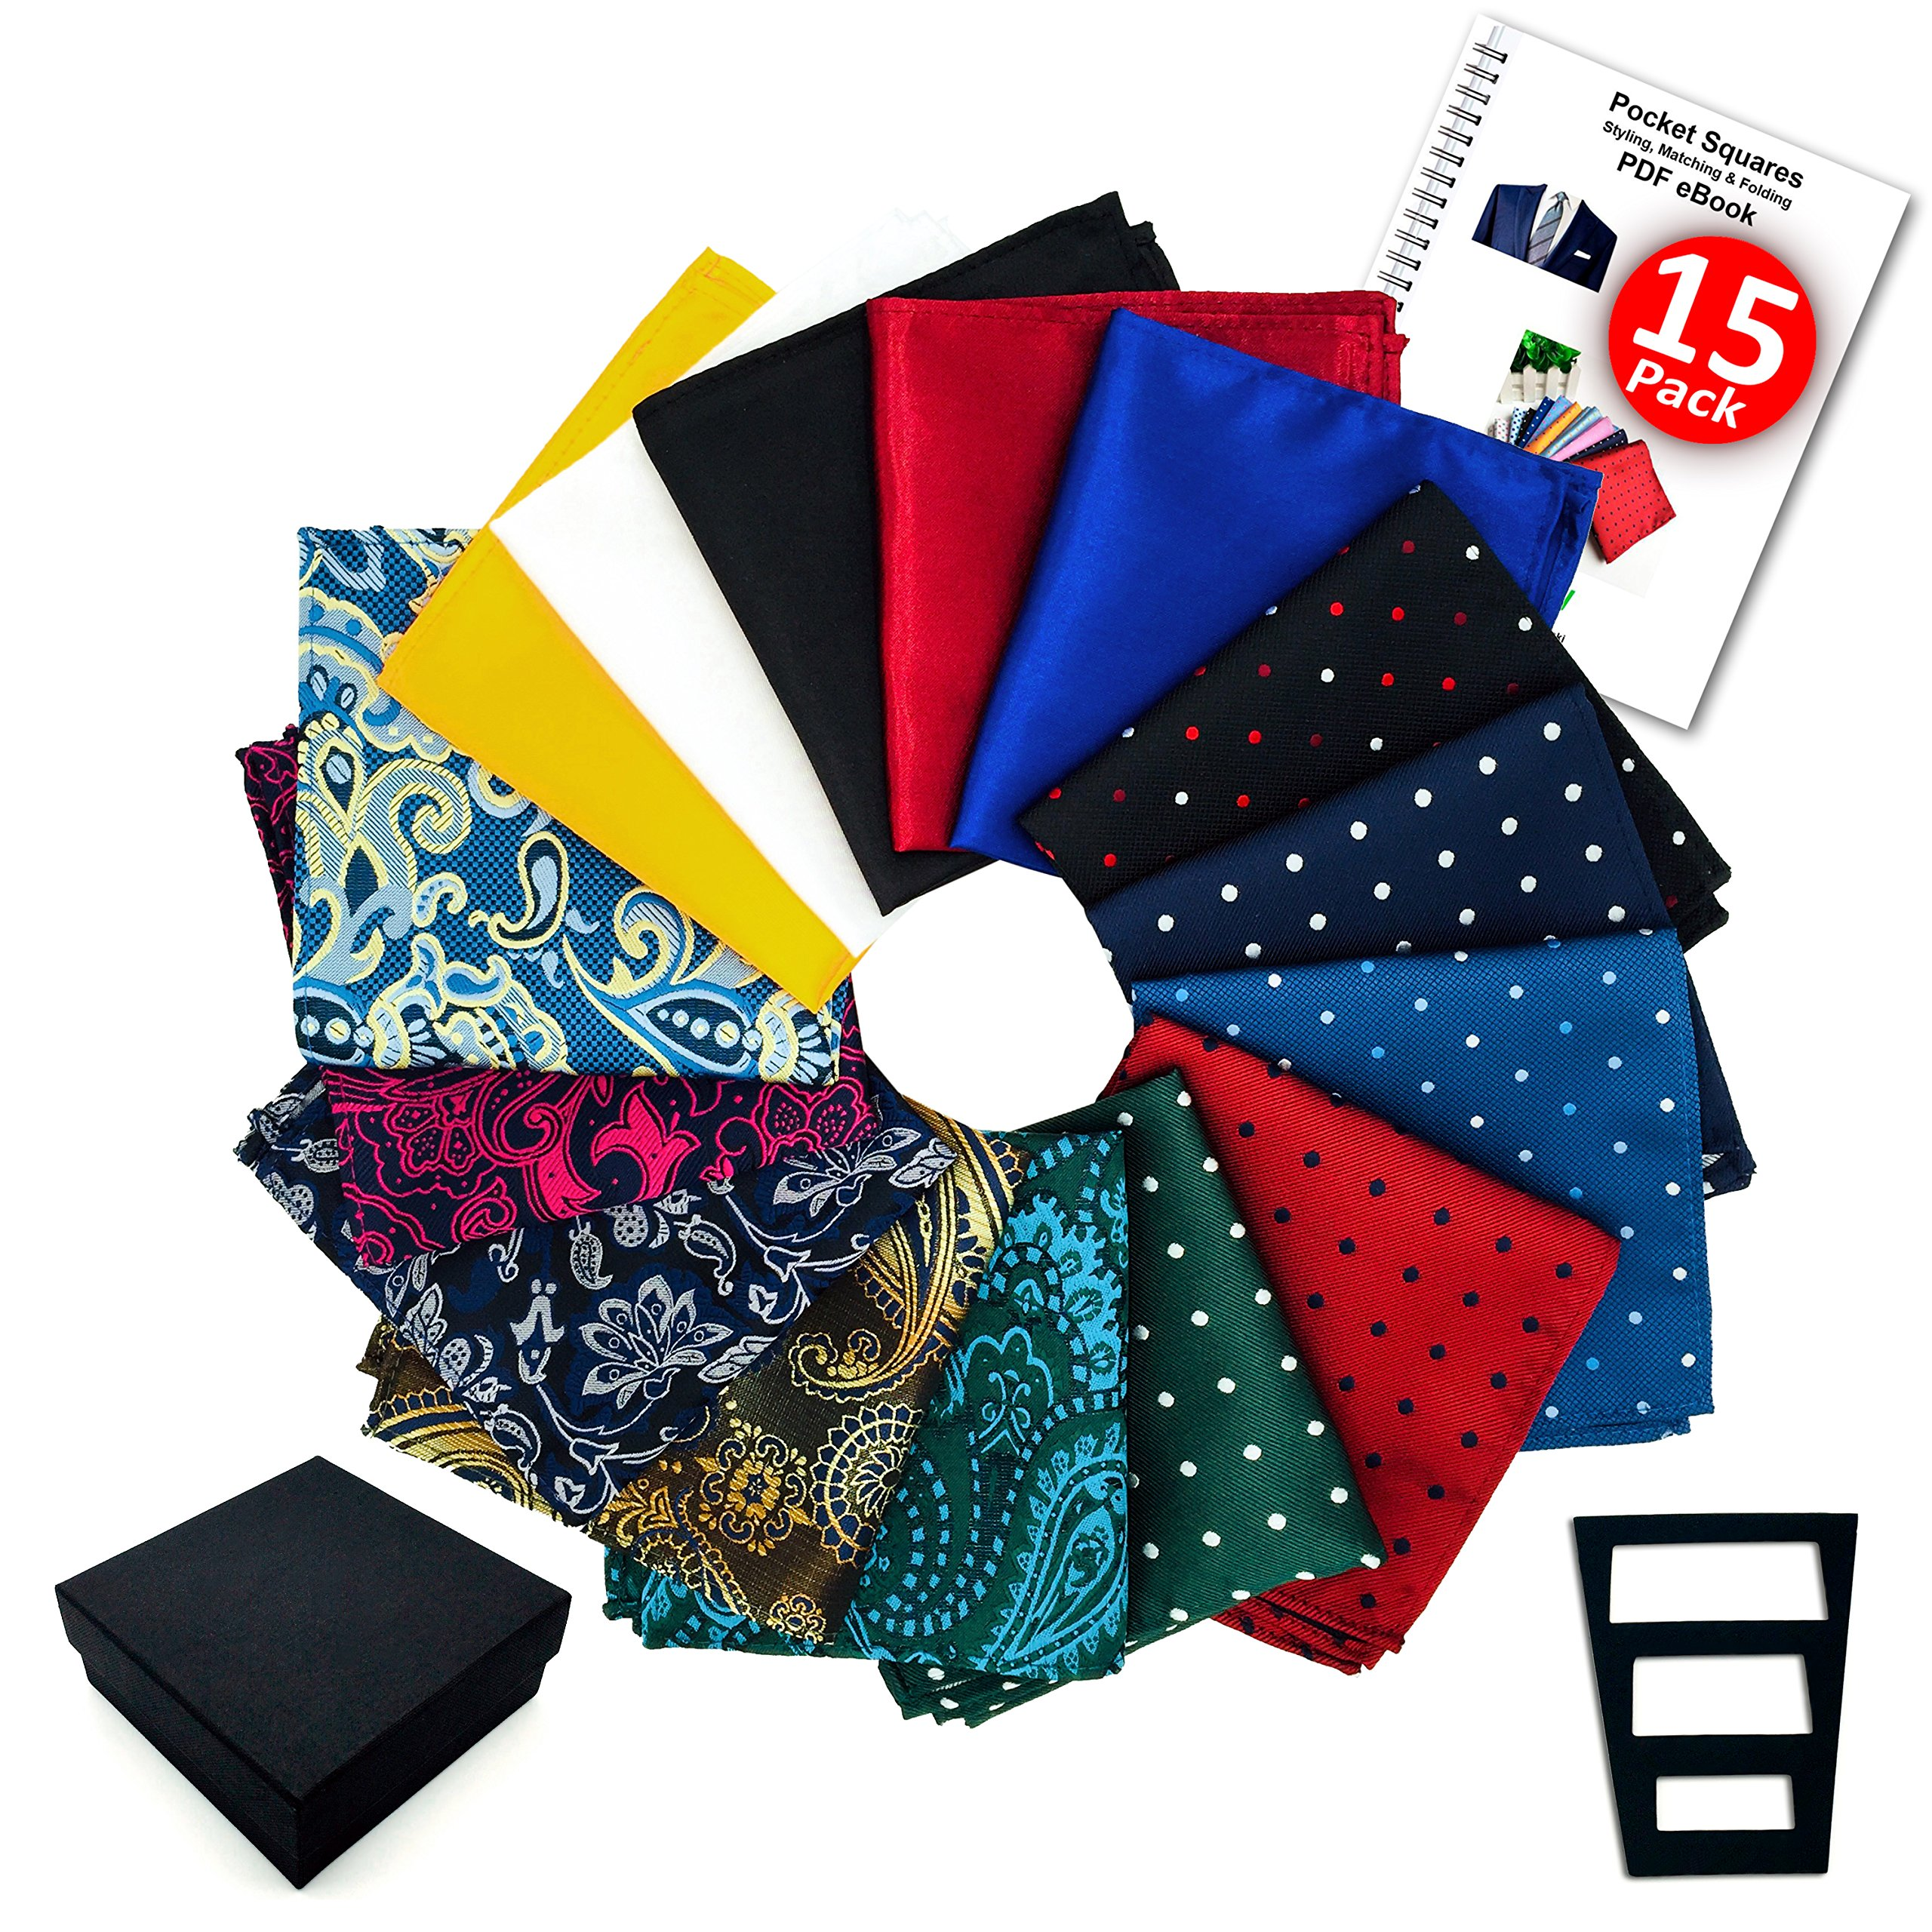 Pocket Squares for men 15 Pack set in Gift Box Assorted colors Polka dots Paisley Plain by ekSel